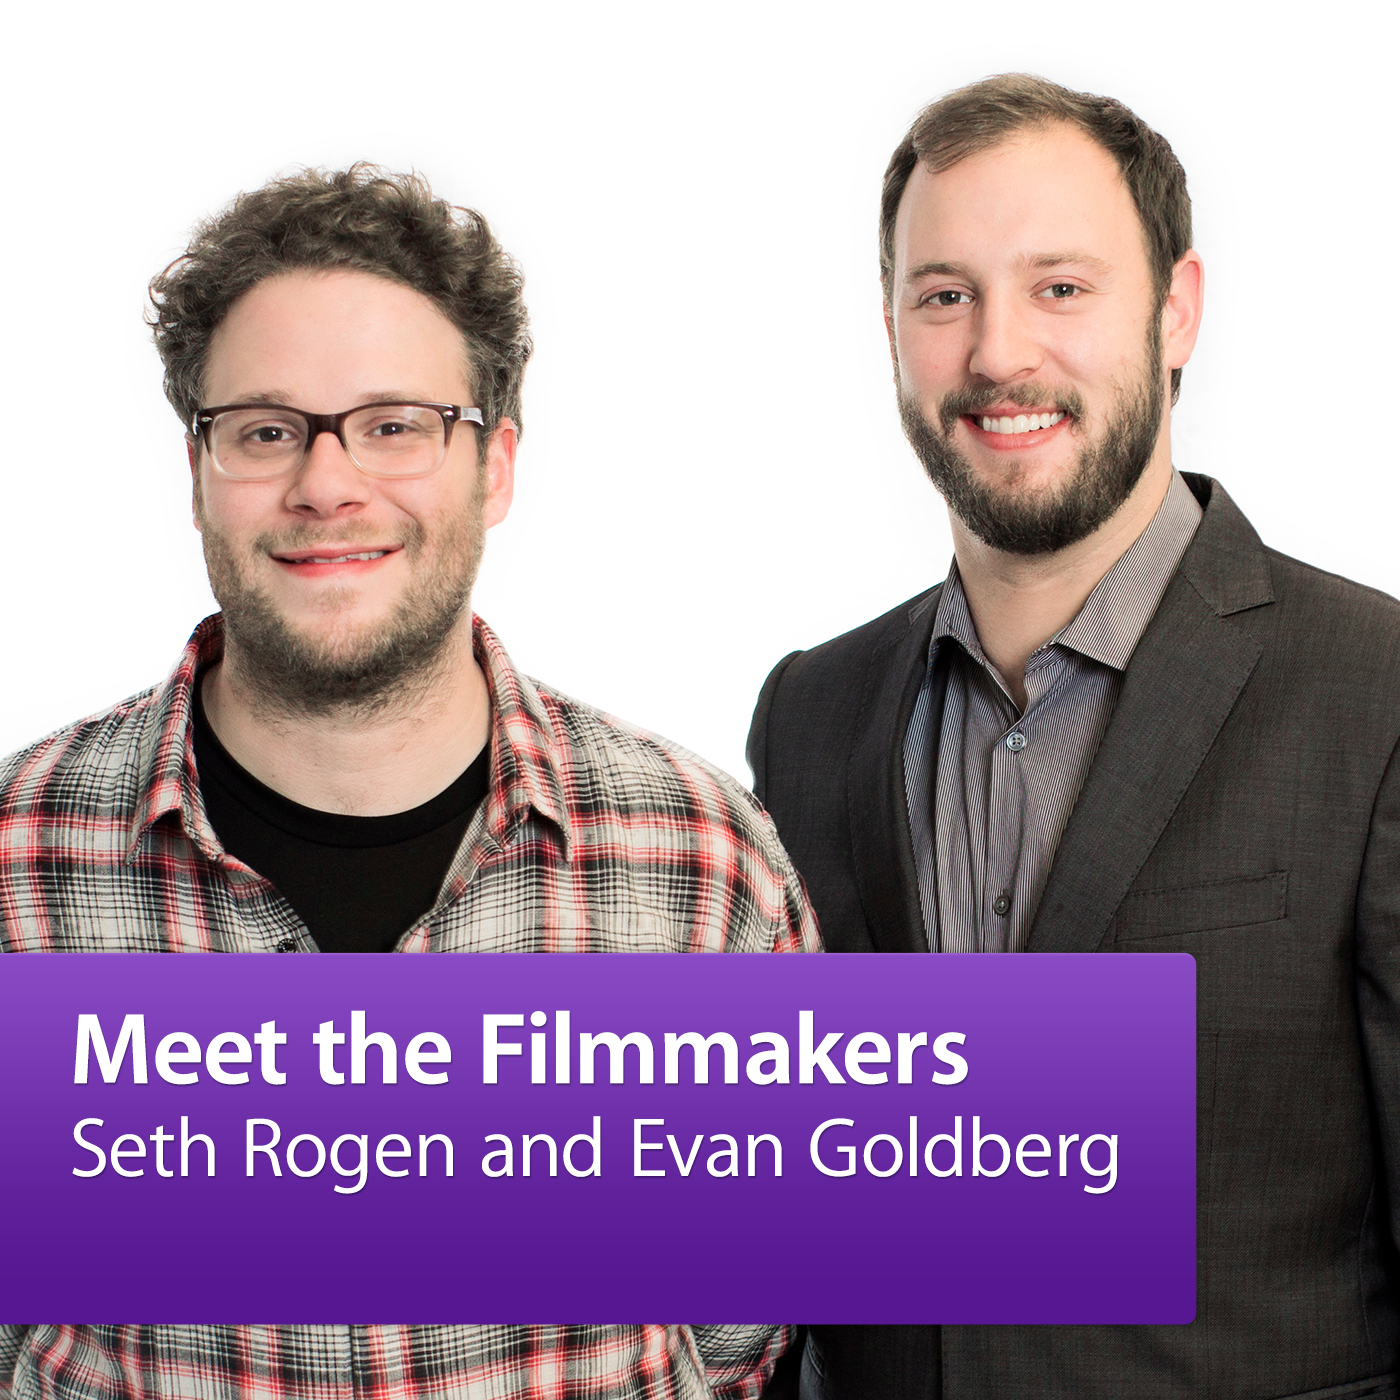 Seth Rogen and Evan Goldberg: Meet the Filmmakers